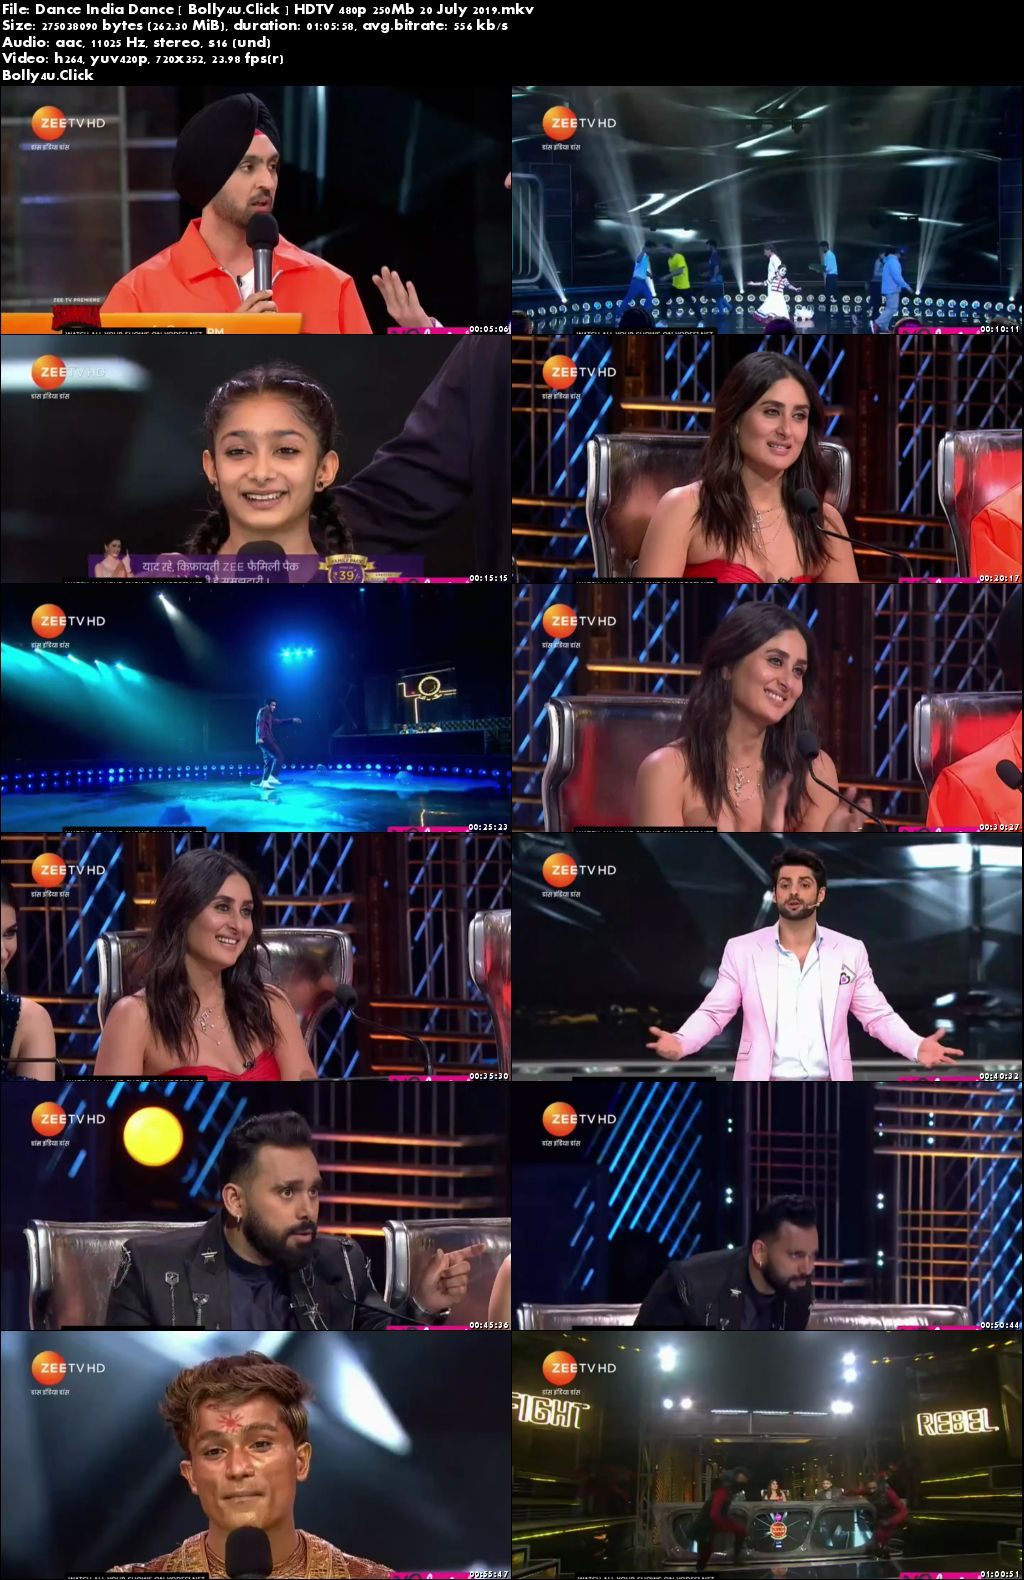 Dance India Dance HDTV 480p 250Mb 20 July 2019 download